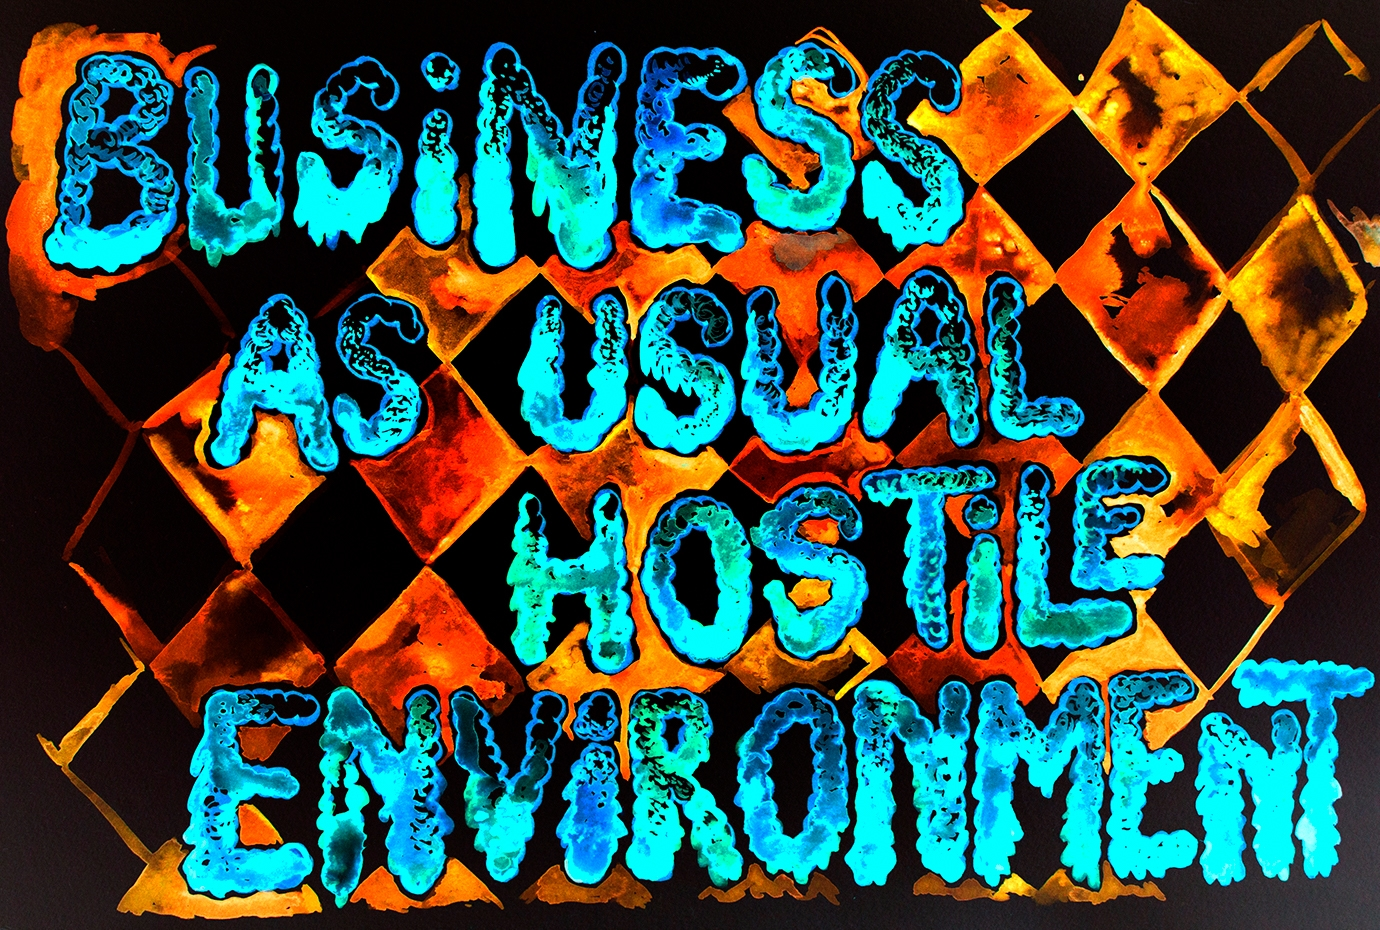 Conjuring rest for new infrastructure – business as usual : hostile environment (watercolour series, 2021)